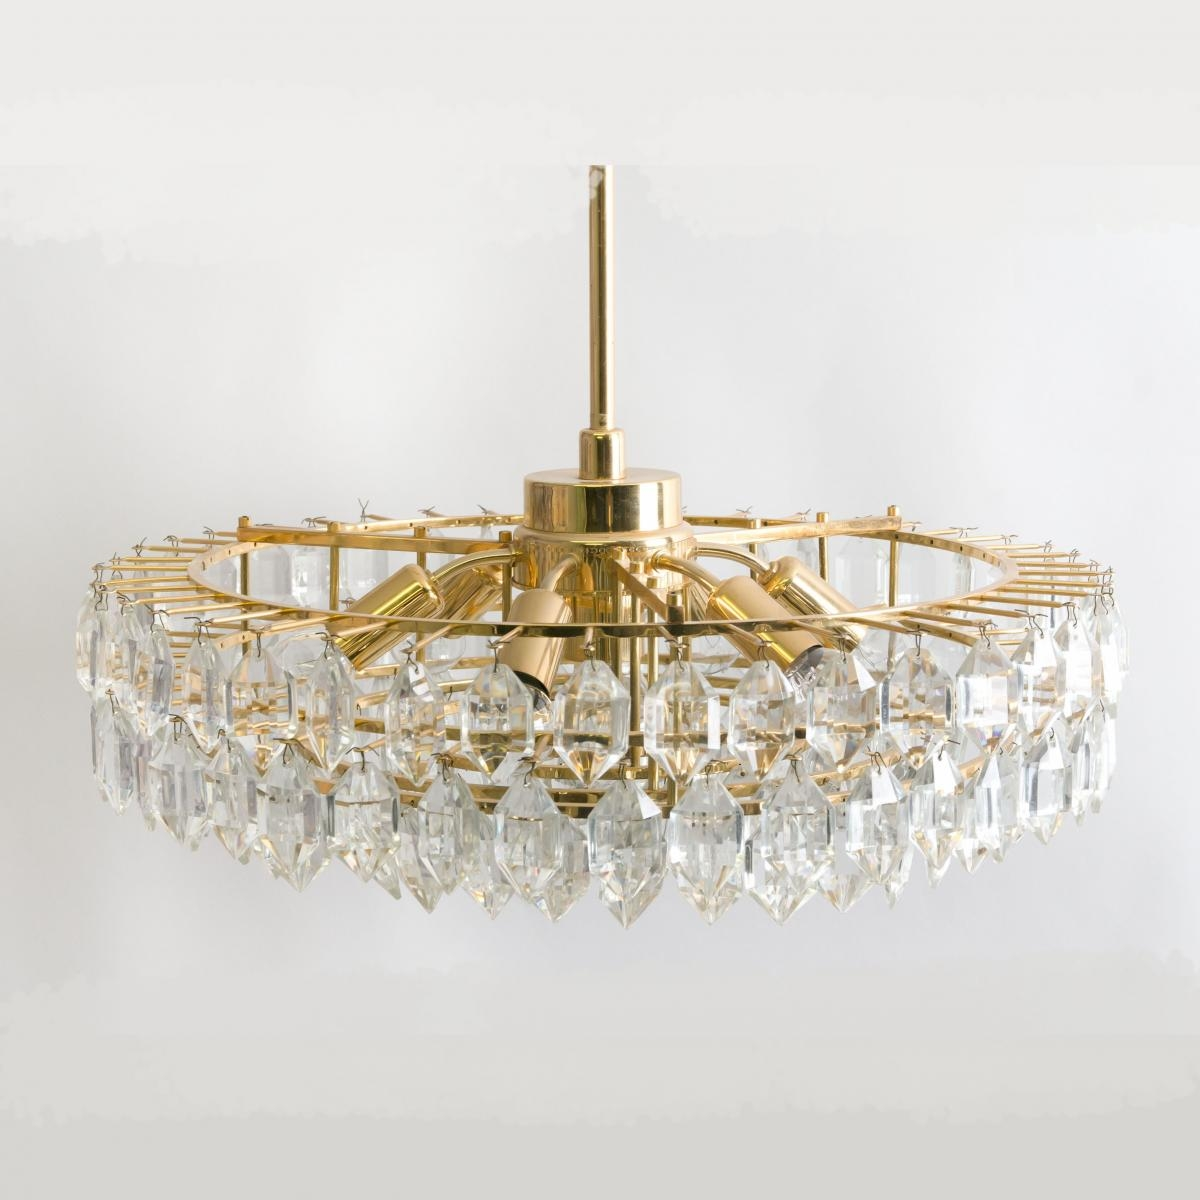 Large Glass Chandelier From Bakalowits And Sohne 1950s For Sale In Large Glass Chandelier (#6 of 12)